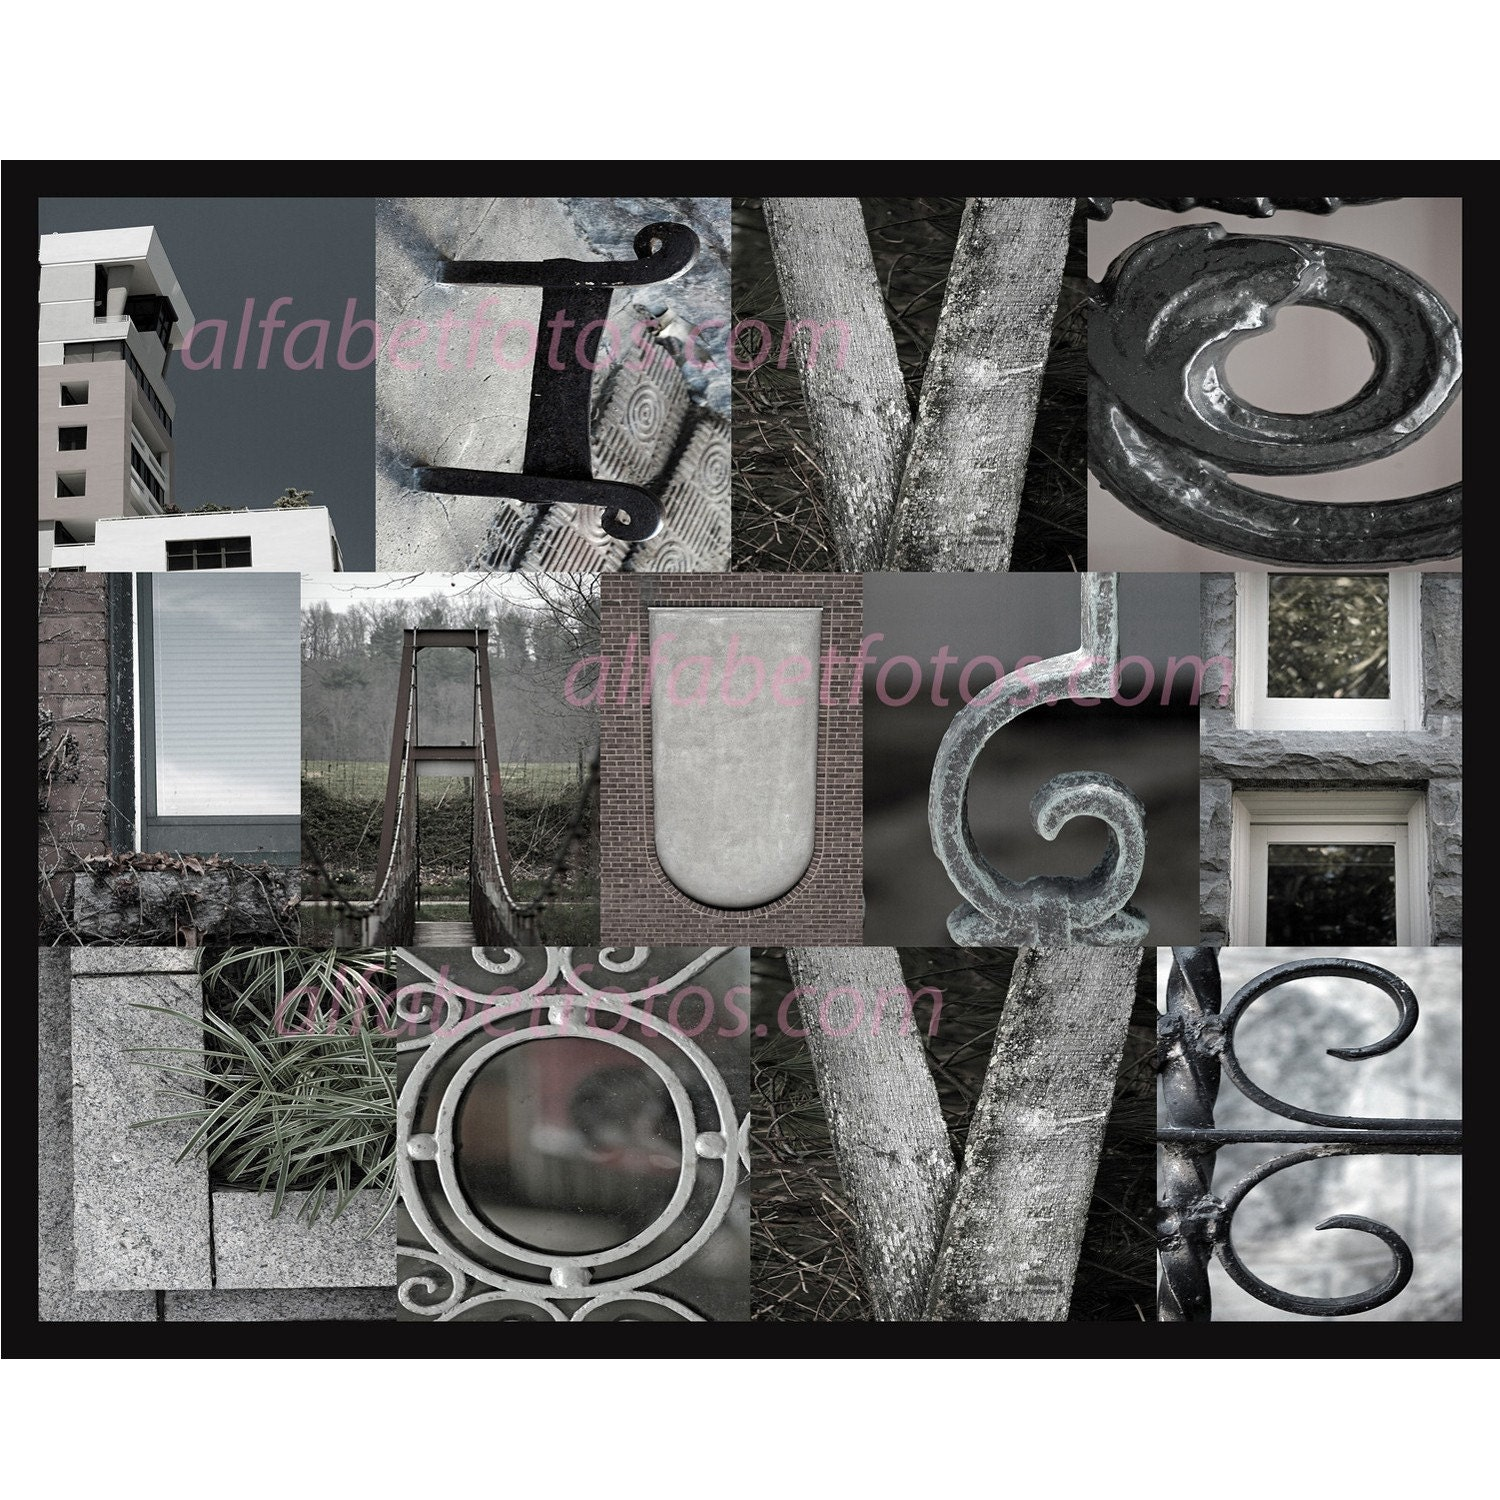 Alphabet Letter Photography Home Decor Wall Art by alfabetfotos